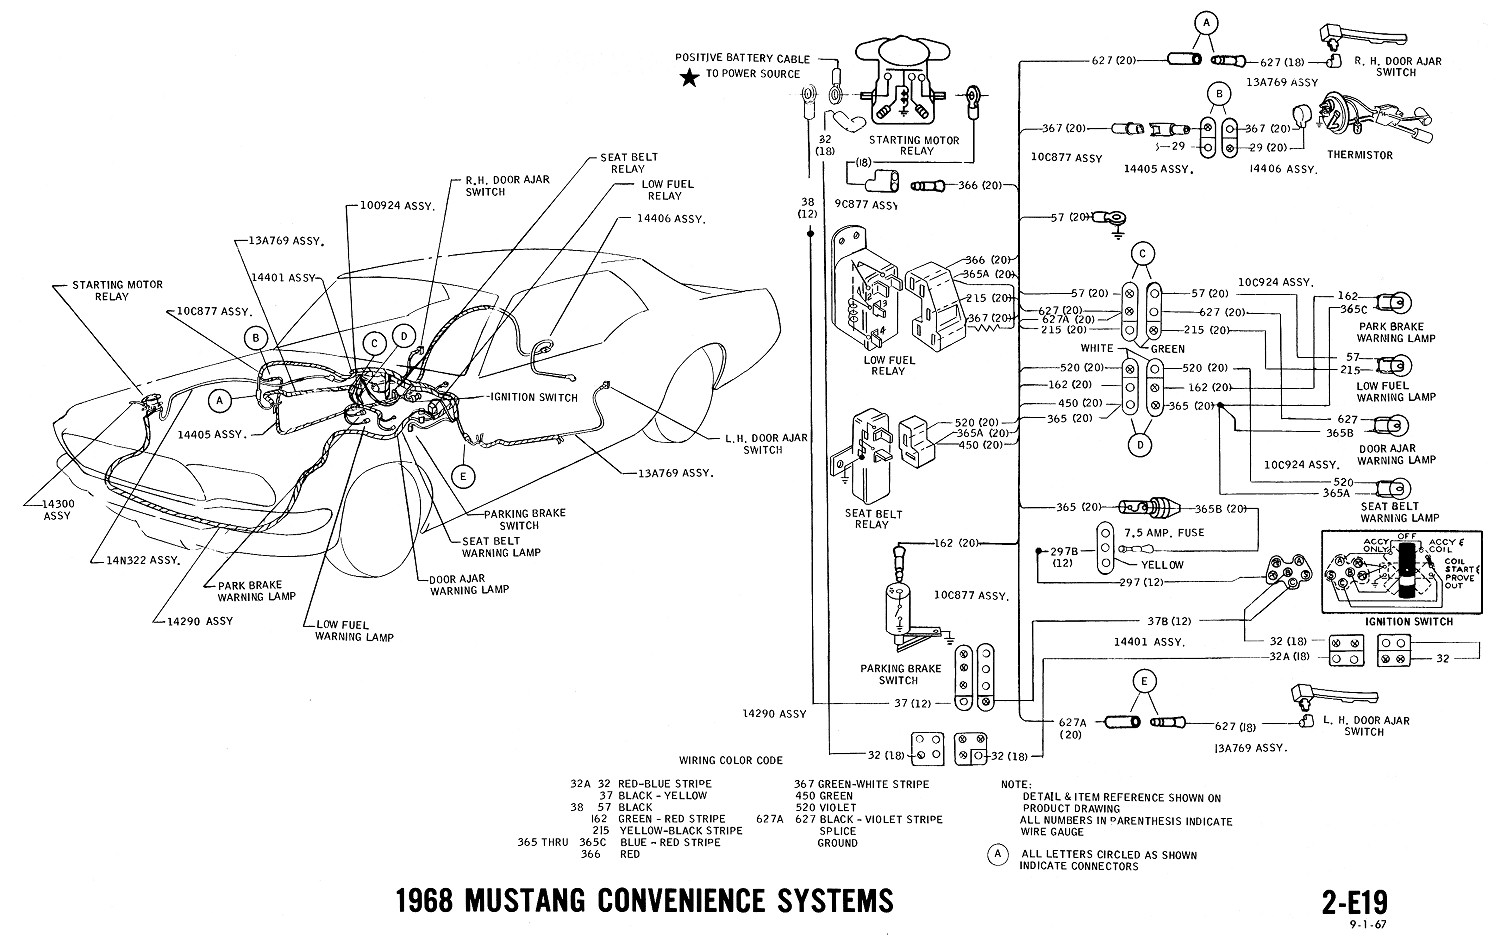 E19 1968 mustang wiring diagrams evolving software Multi Speed Blower Motor Wiring at gsmportal.co